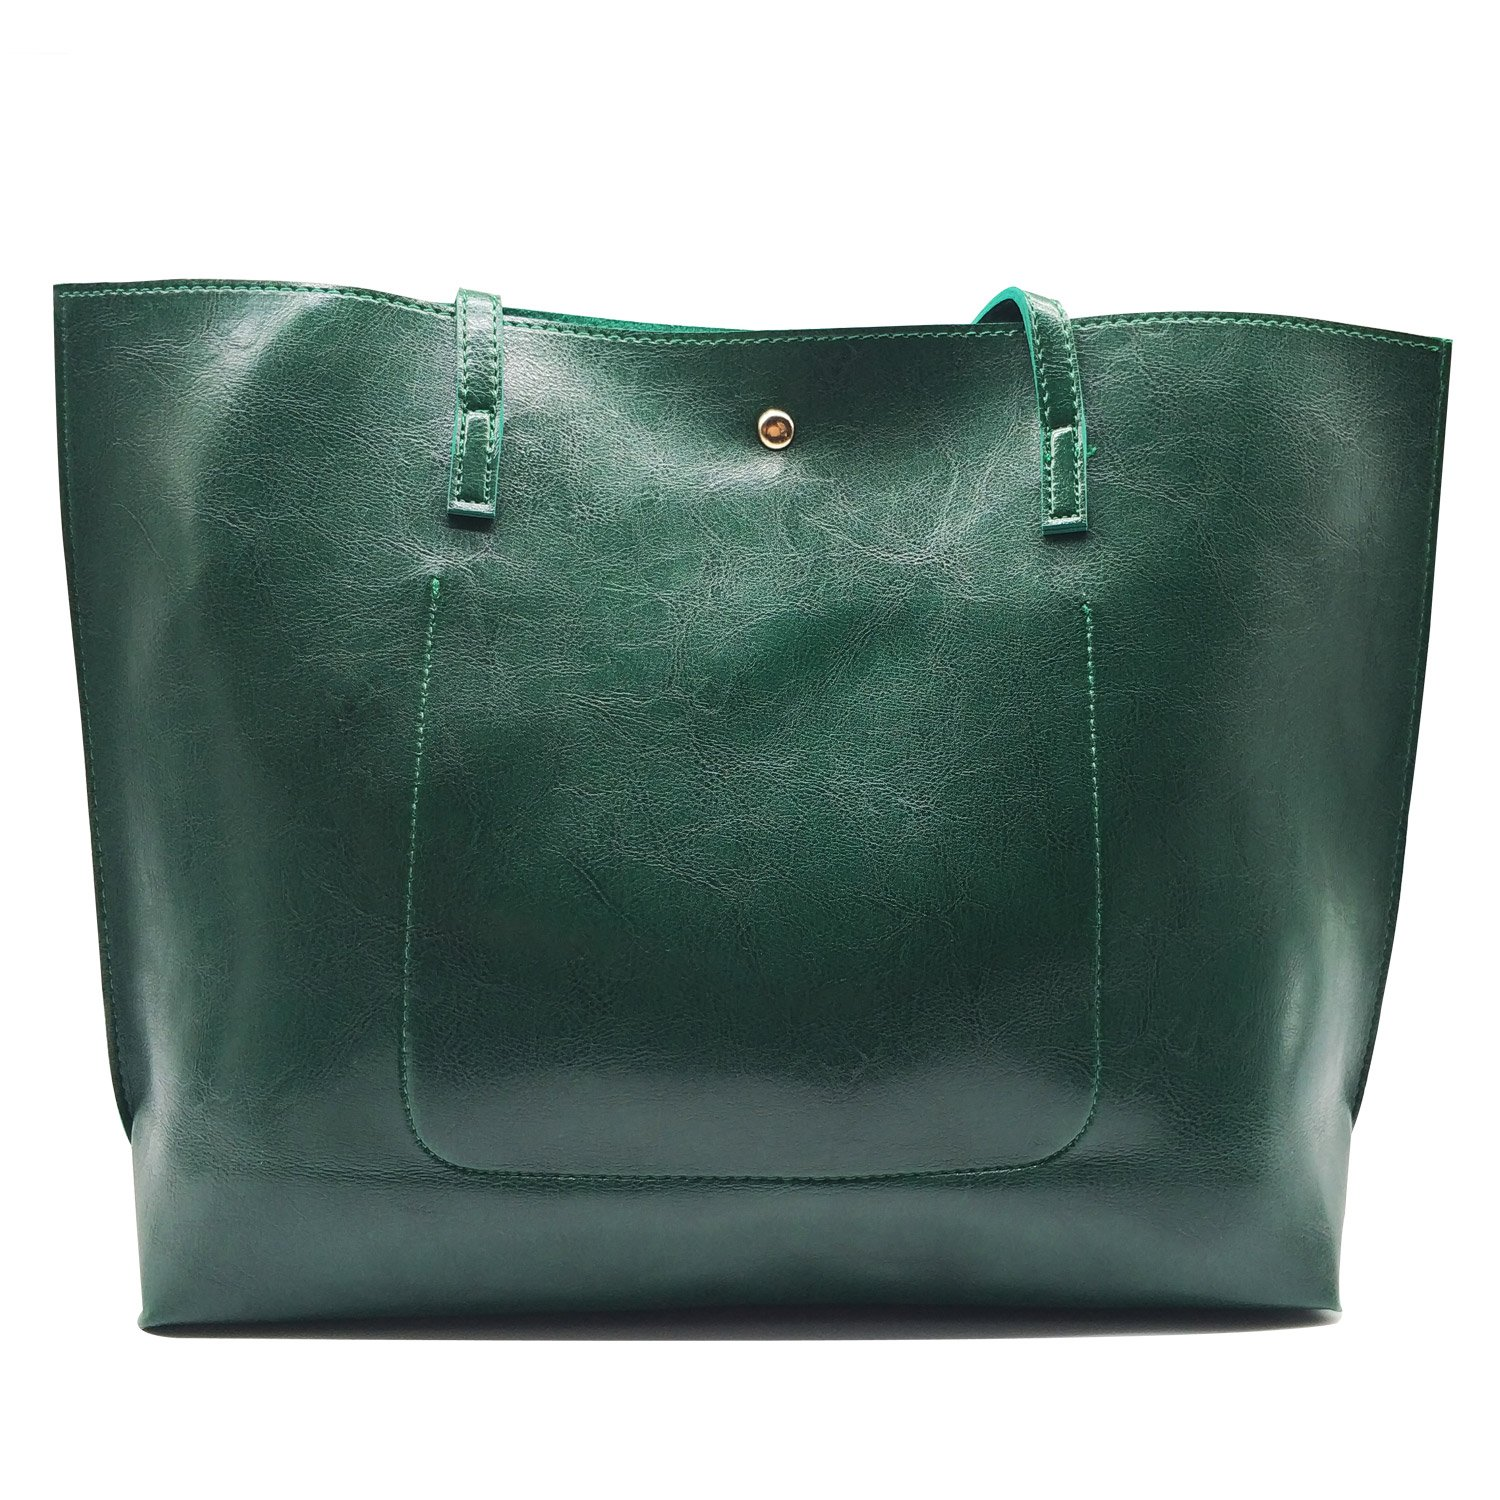 XBER Women Designer Handbags Tote Bags Ladies Top Handle Satchel Shoulder  Bag (Dark green)  Handbags  Amazon.com c05d131ed890b